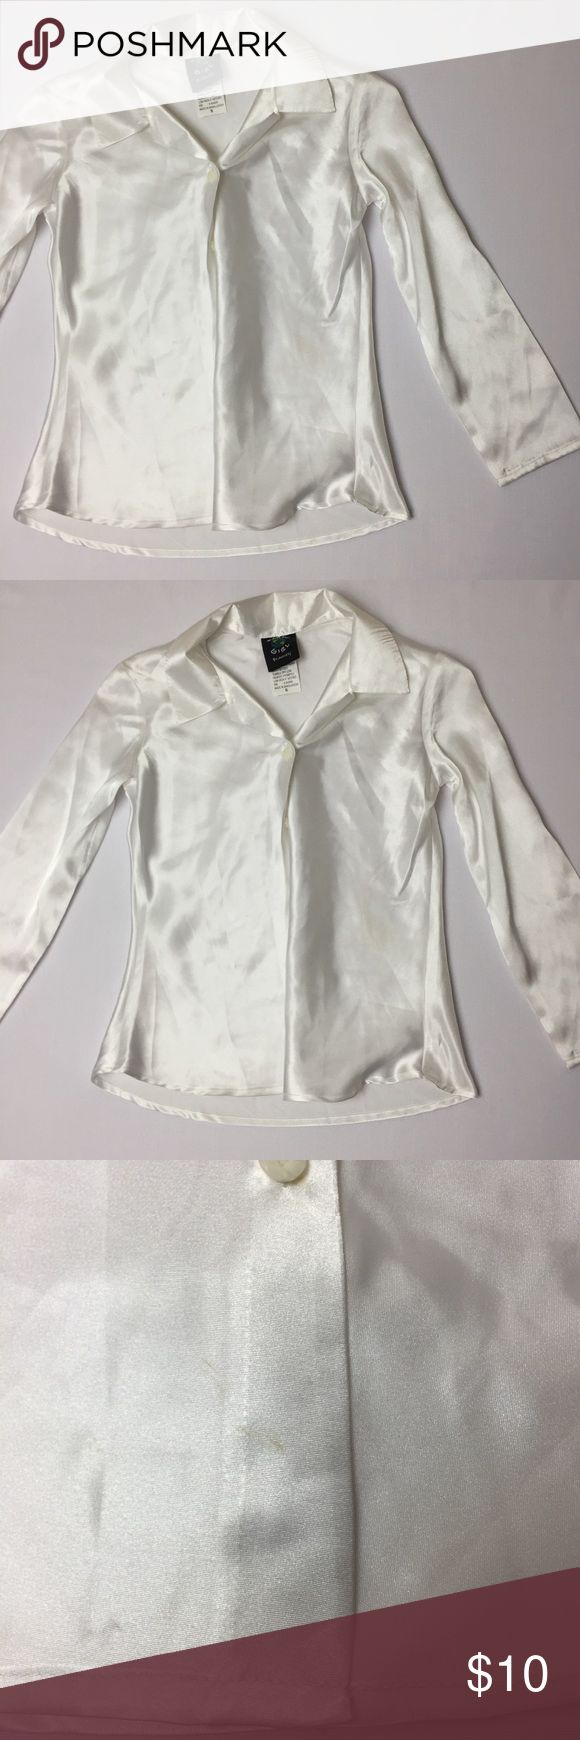 EARTH GIRL by Anxiety White Satin Button Up SMALL White Satin material collar neck button down shirt. Not in perfect condition: has some blemishes. Might come off in the washing machine but haven't tried it. Size small. ANXIETY Tops Button Down Shirts